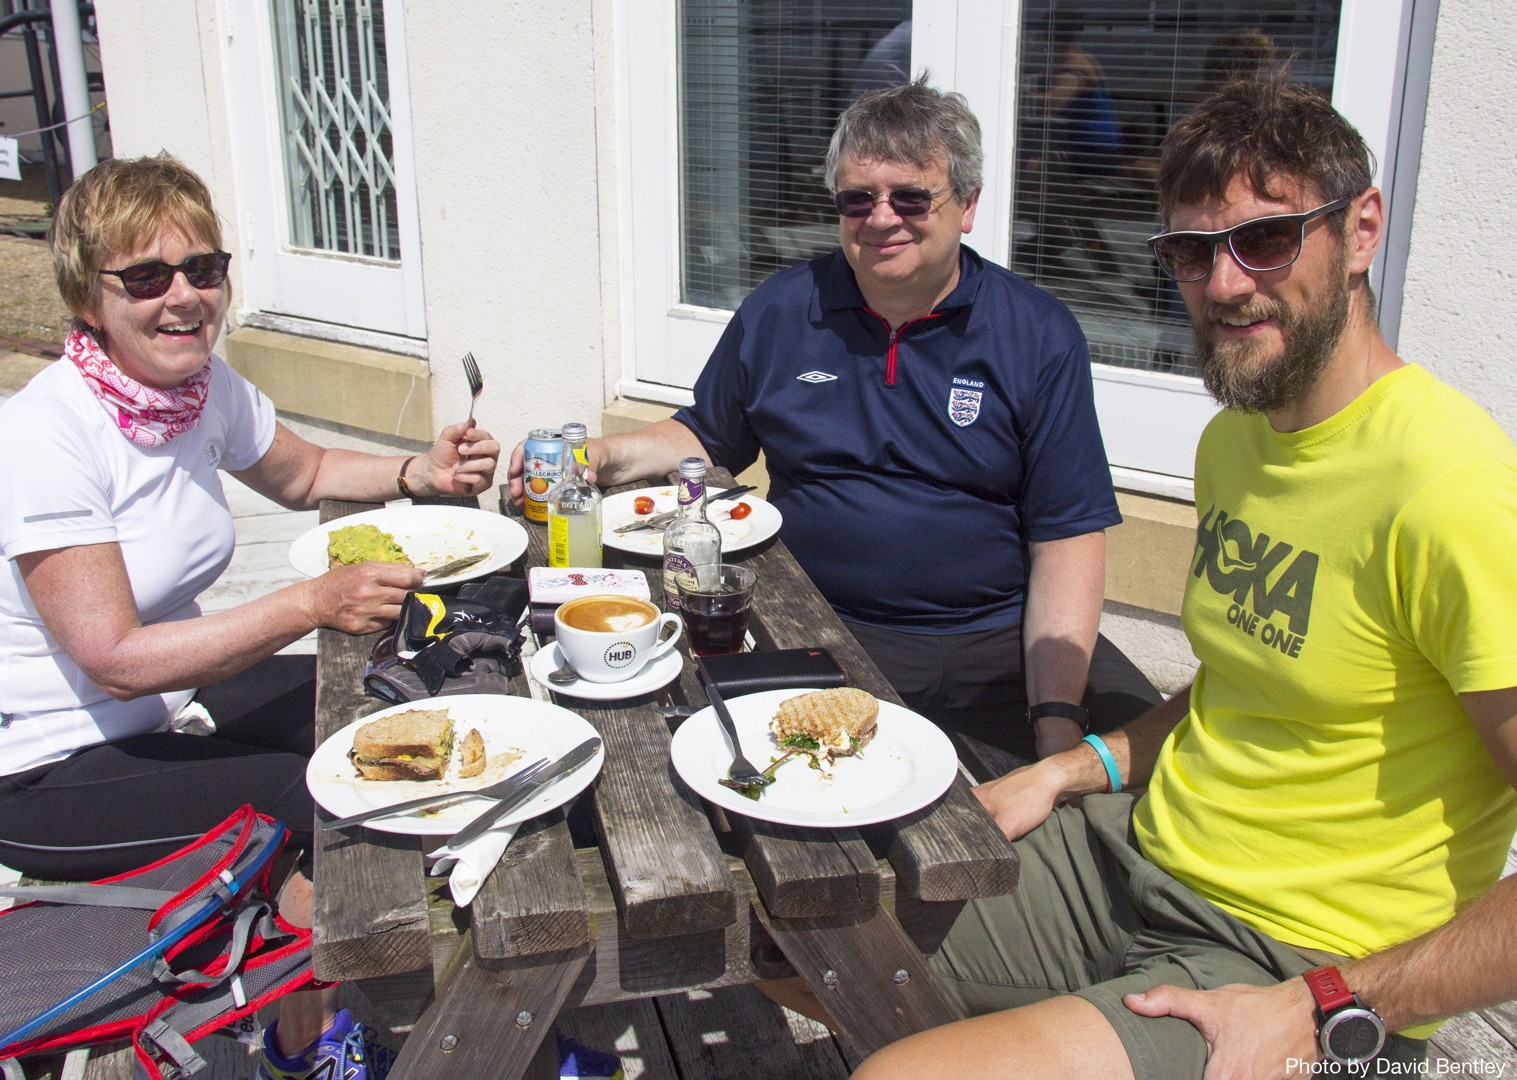 Self-Guided-Leisure-Cycling-Holiday-Hadrians-Cycleway-UK-lunch-break.jpg - UK - Hadrian's Cycleway - 3 Days Cycling - Self-Guided Leisure Cycling Holiday - Leisure Cycling